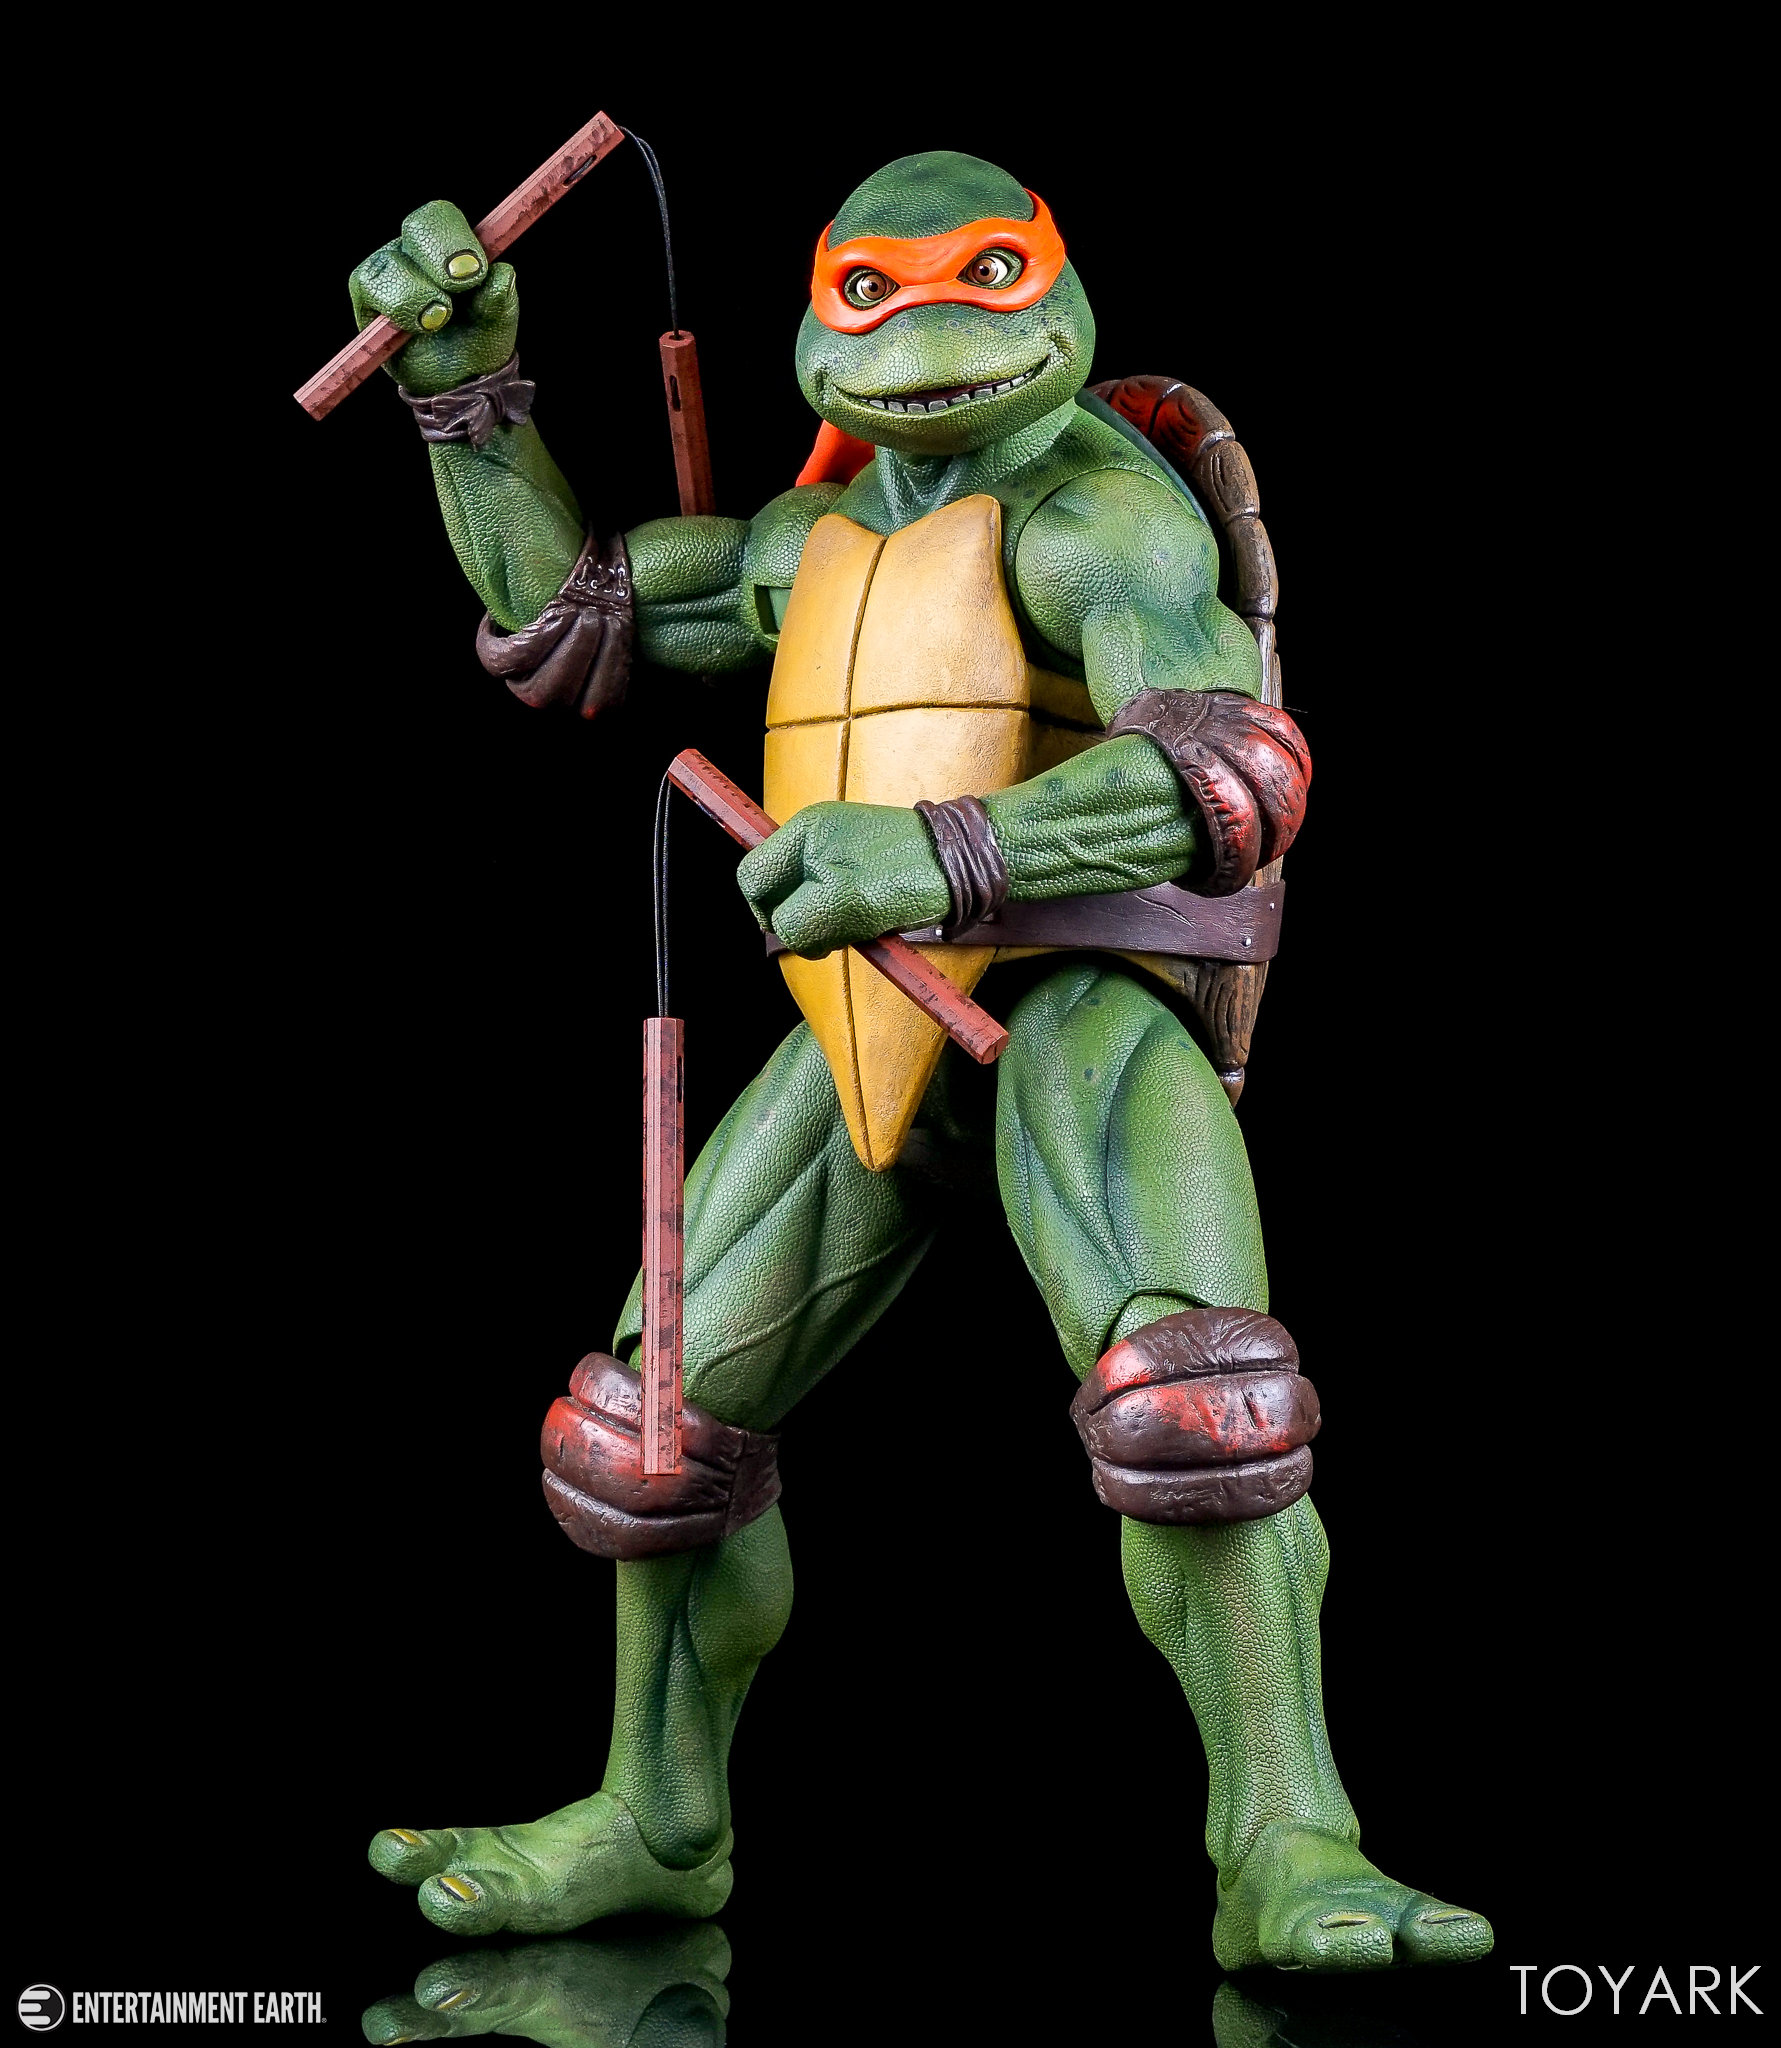 http://news.toyark.com/wp-content/uploads/sites/4/2017/10/NECA-Quarter-Scale-TMNT-Michelangelo-015.jpg